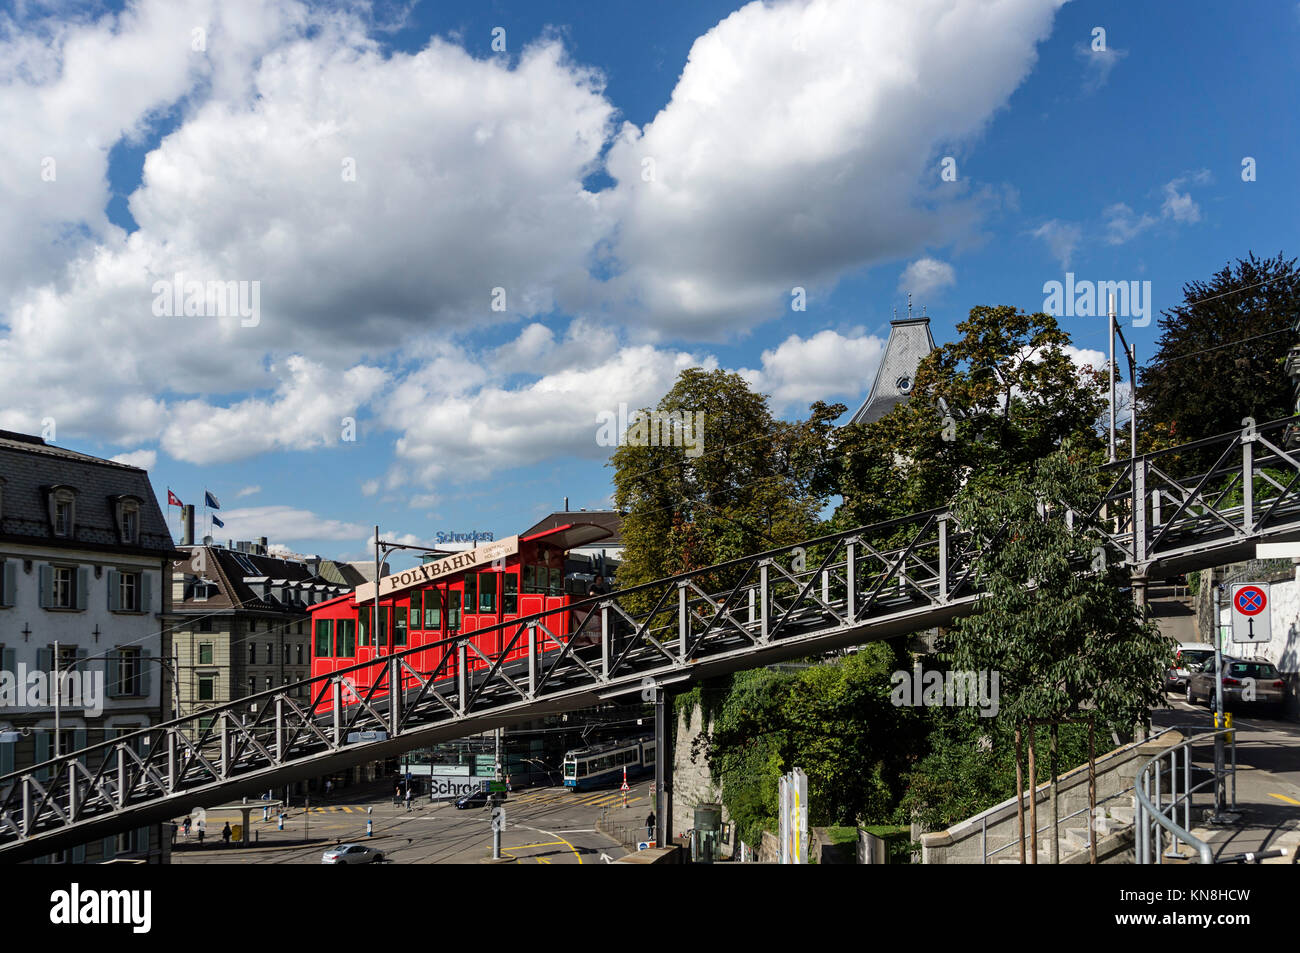 Polybahn, Zurich, Switzerland Stock Photo